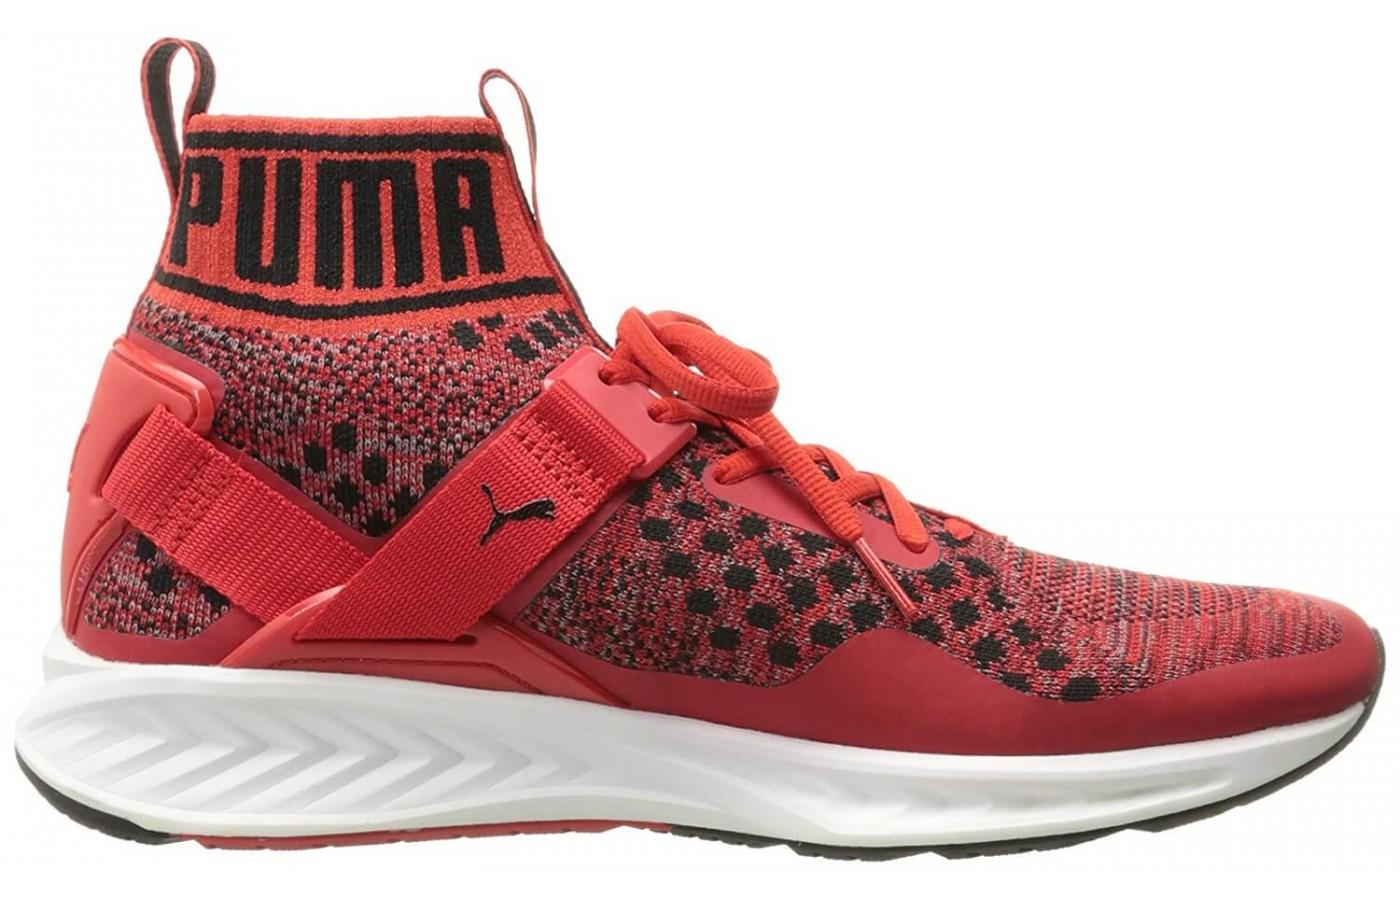 outlet store ed4cd efd39 Puma Ignite evoKnit Fully Reviewed